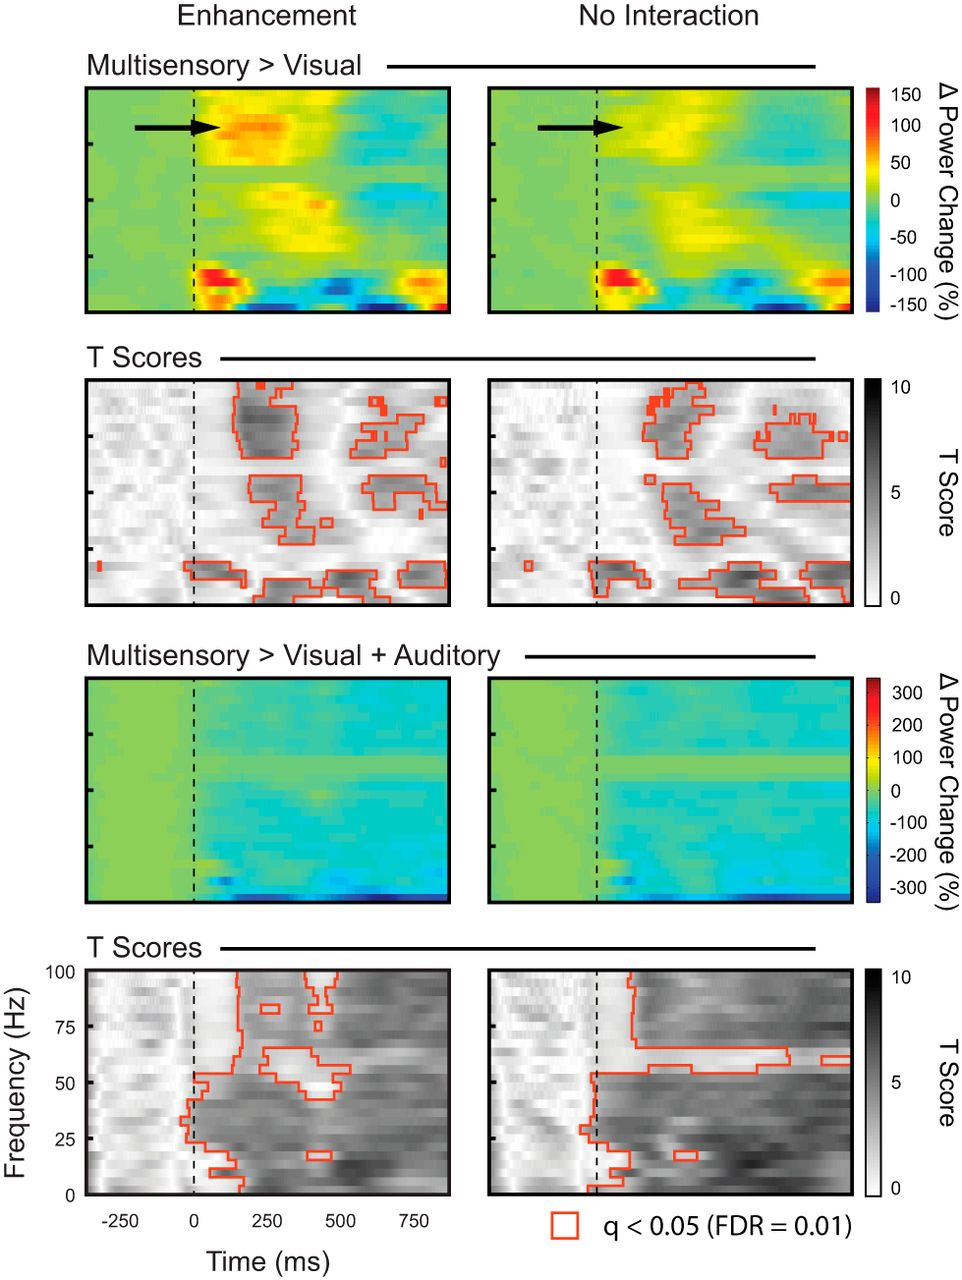 Multisensory Response Modulation in the Superficial Layers of the